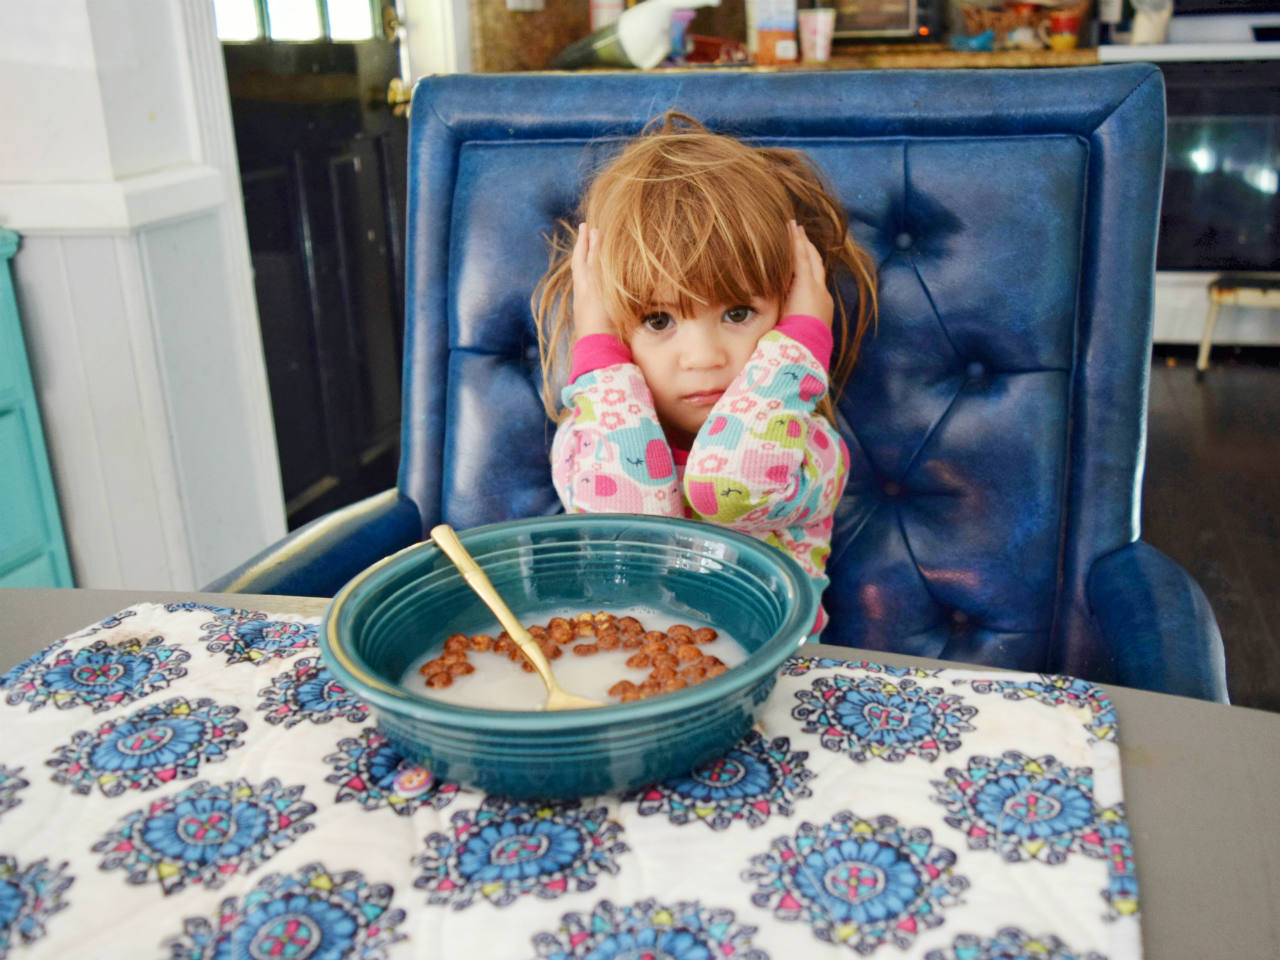 A little girl sitting in front of a half empty cereal bowl with her hands covering her ears